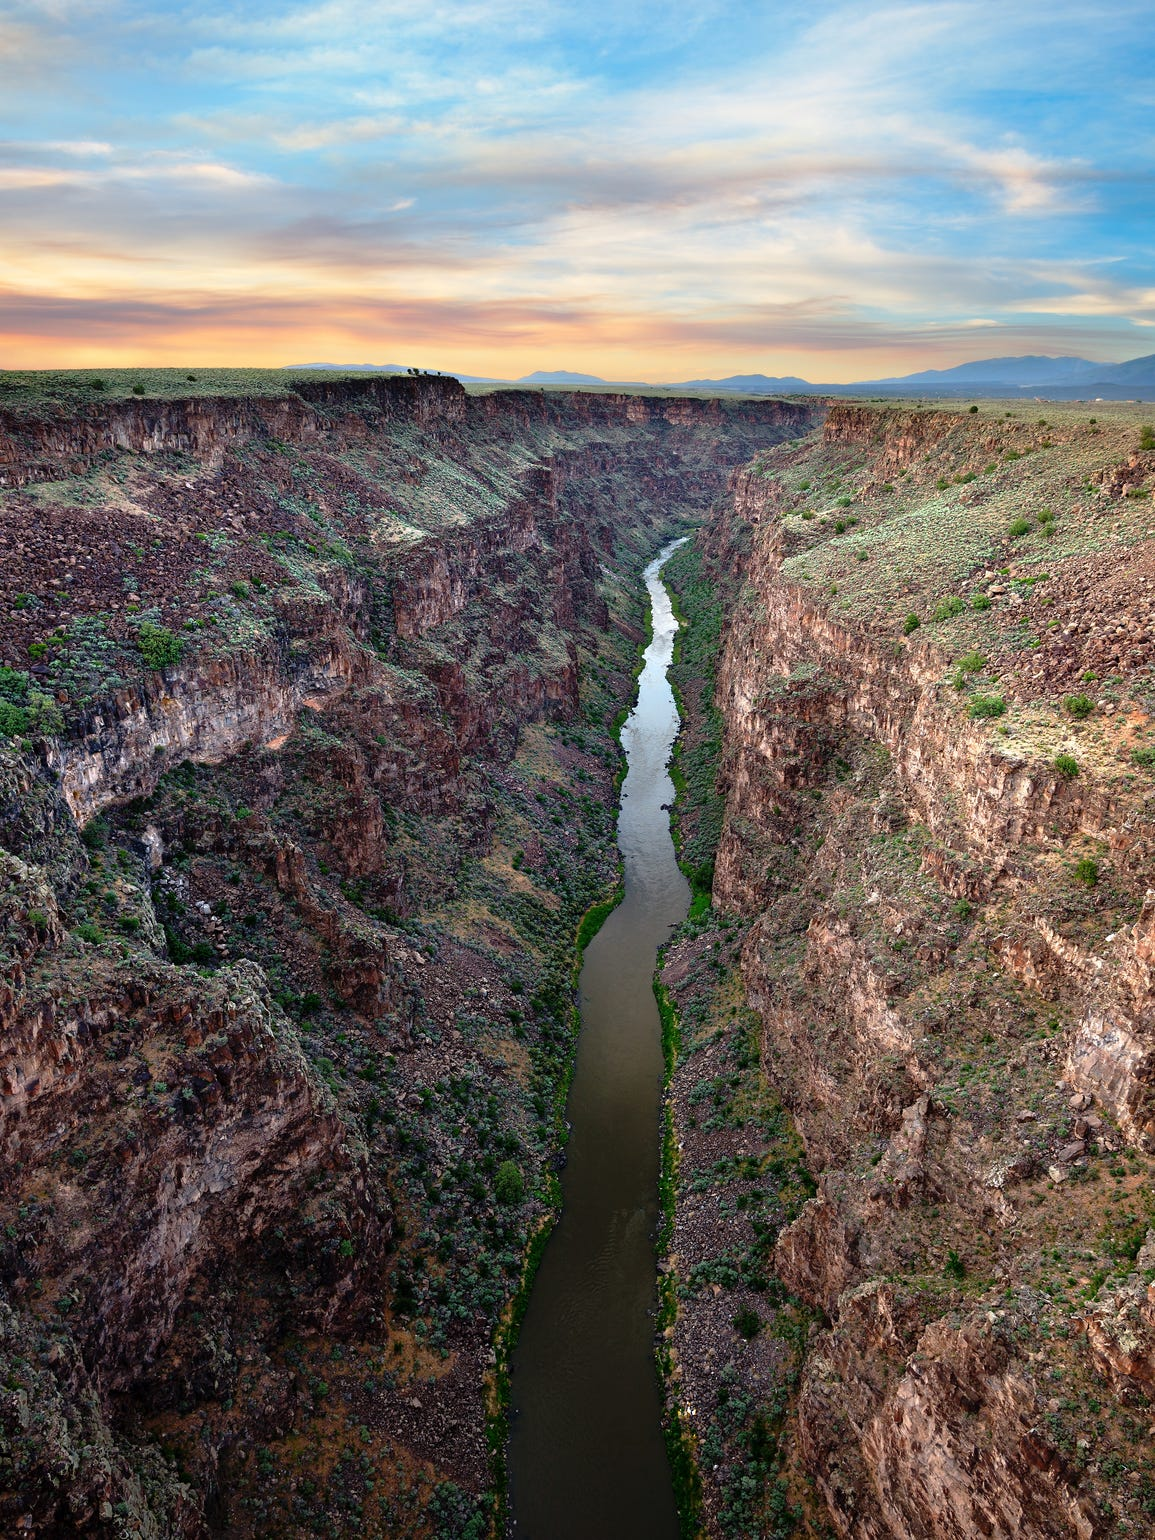 Picture of the Rio Grande at Sunset, just outside of